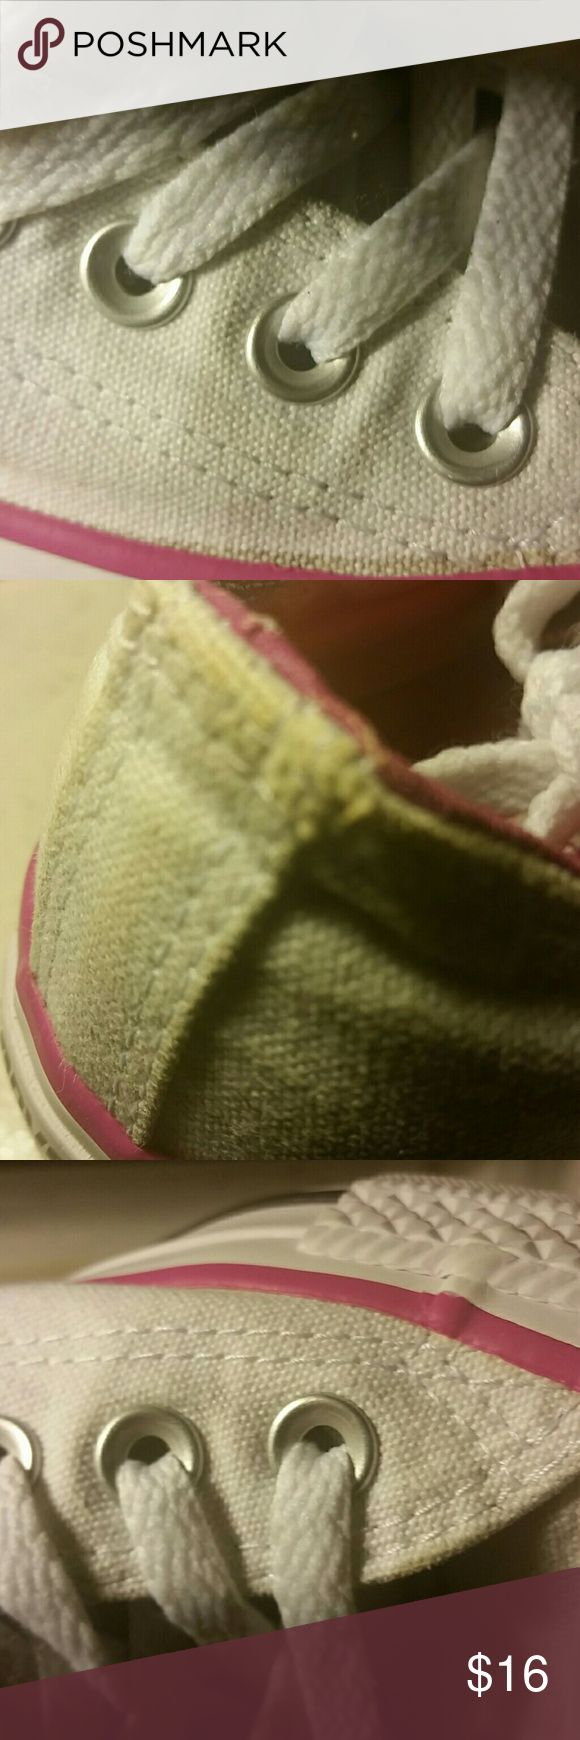 2nd pic  women white converses Women  white Converses trimmed in pink with a double tongue washed and clean with a few spots gently used clean soles and shoelaces double tongue final sale no trade Converse Shoes Sneakers